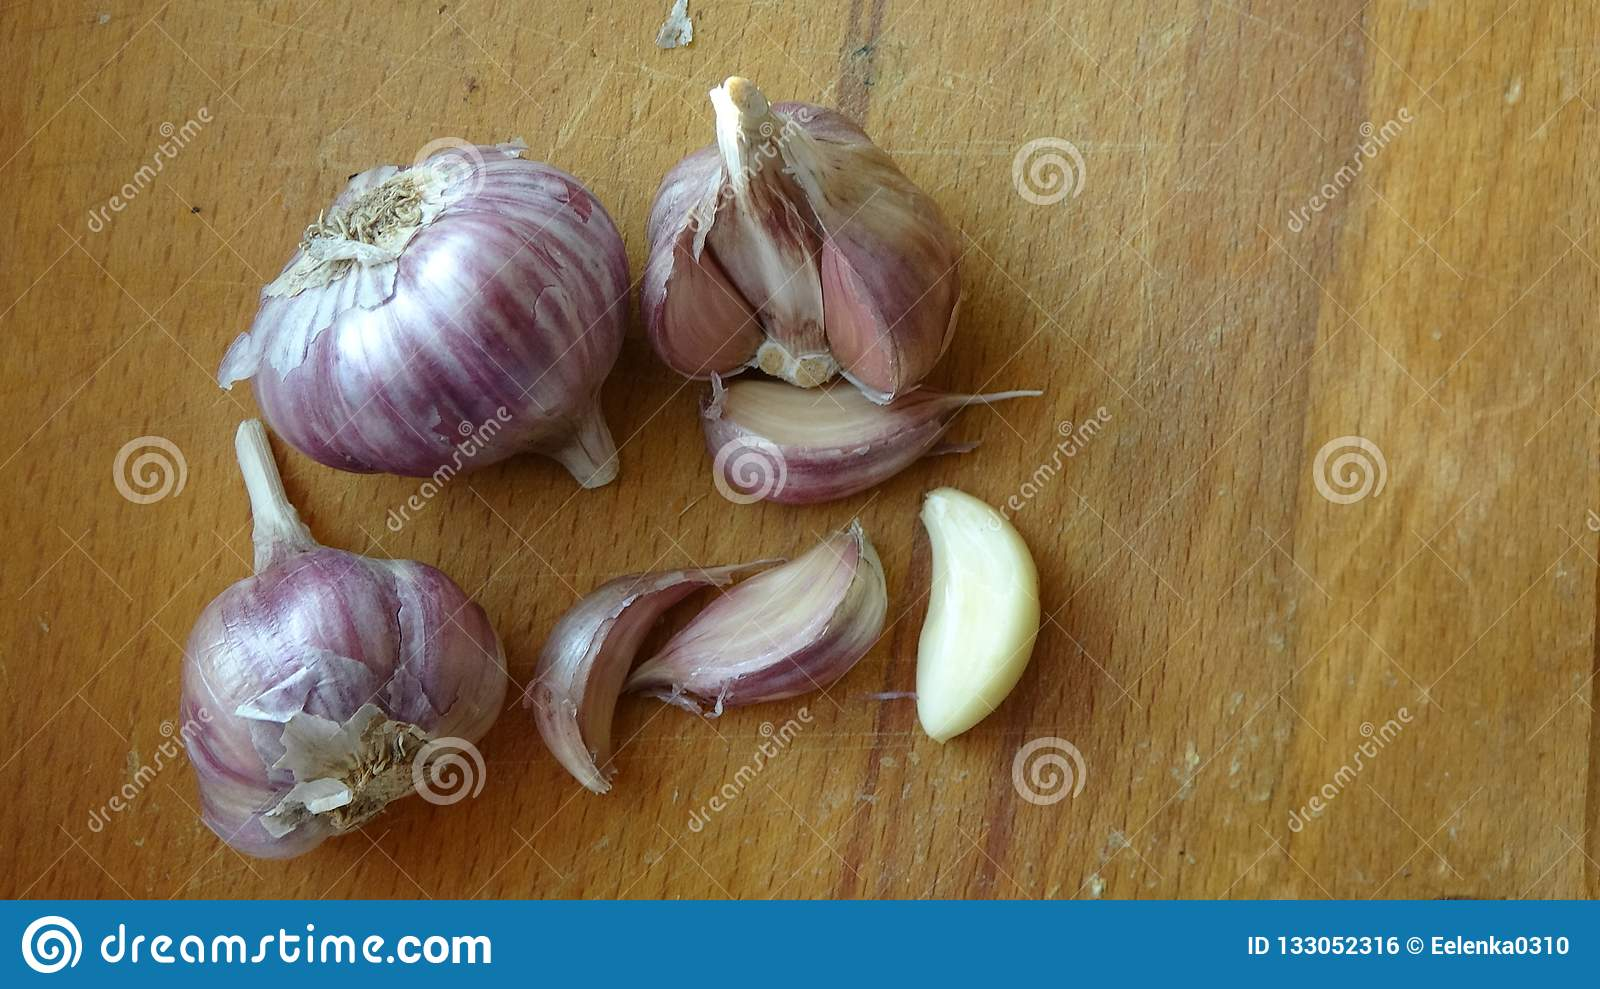 Heads Of Garlic On A Wooden Board Lie On The Table  Whole Bulb Of